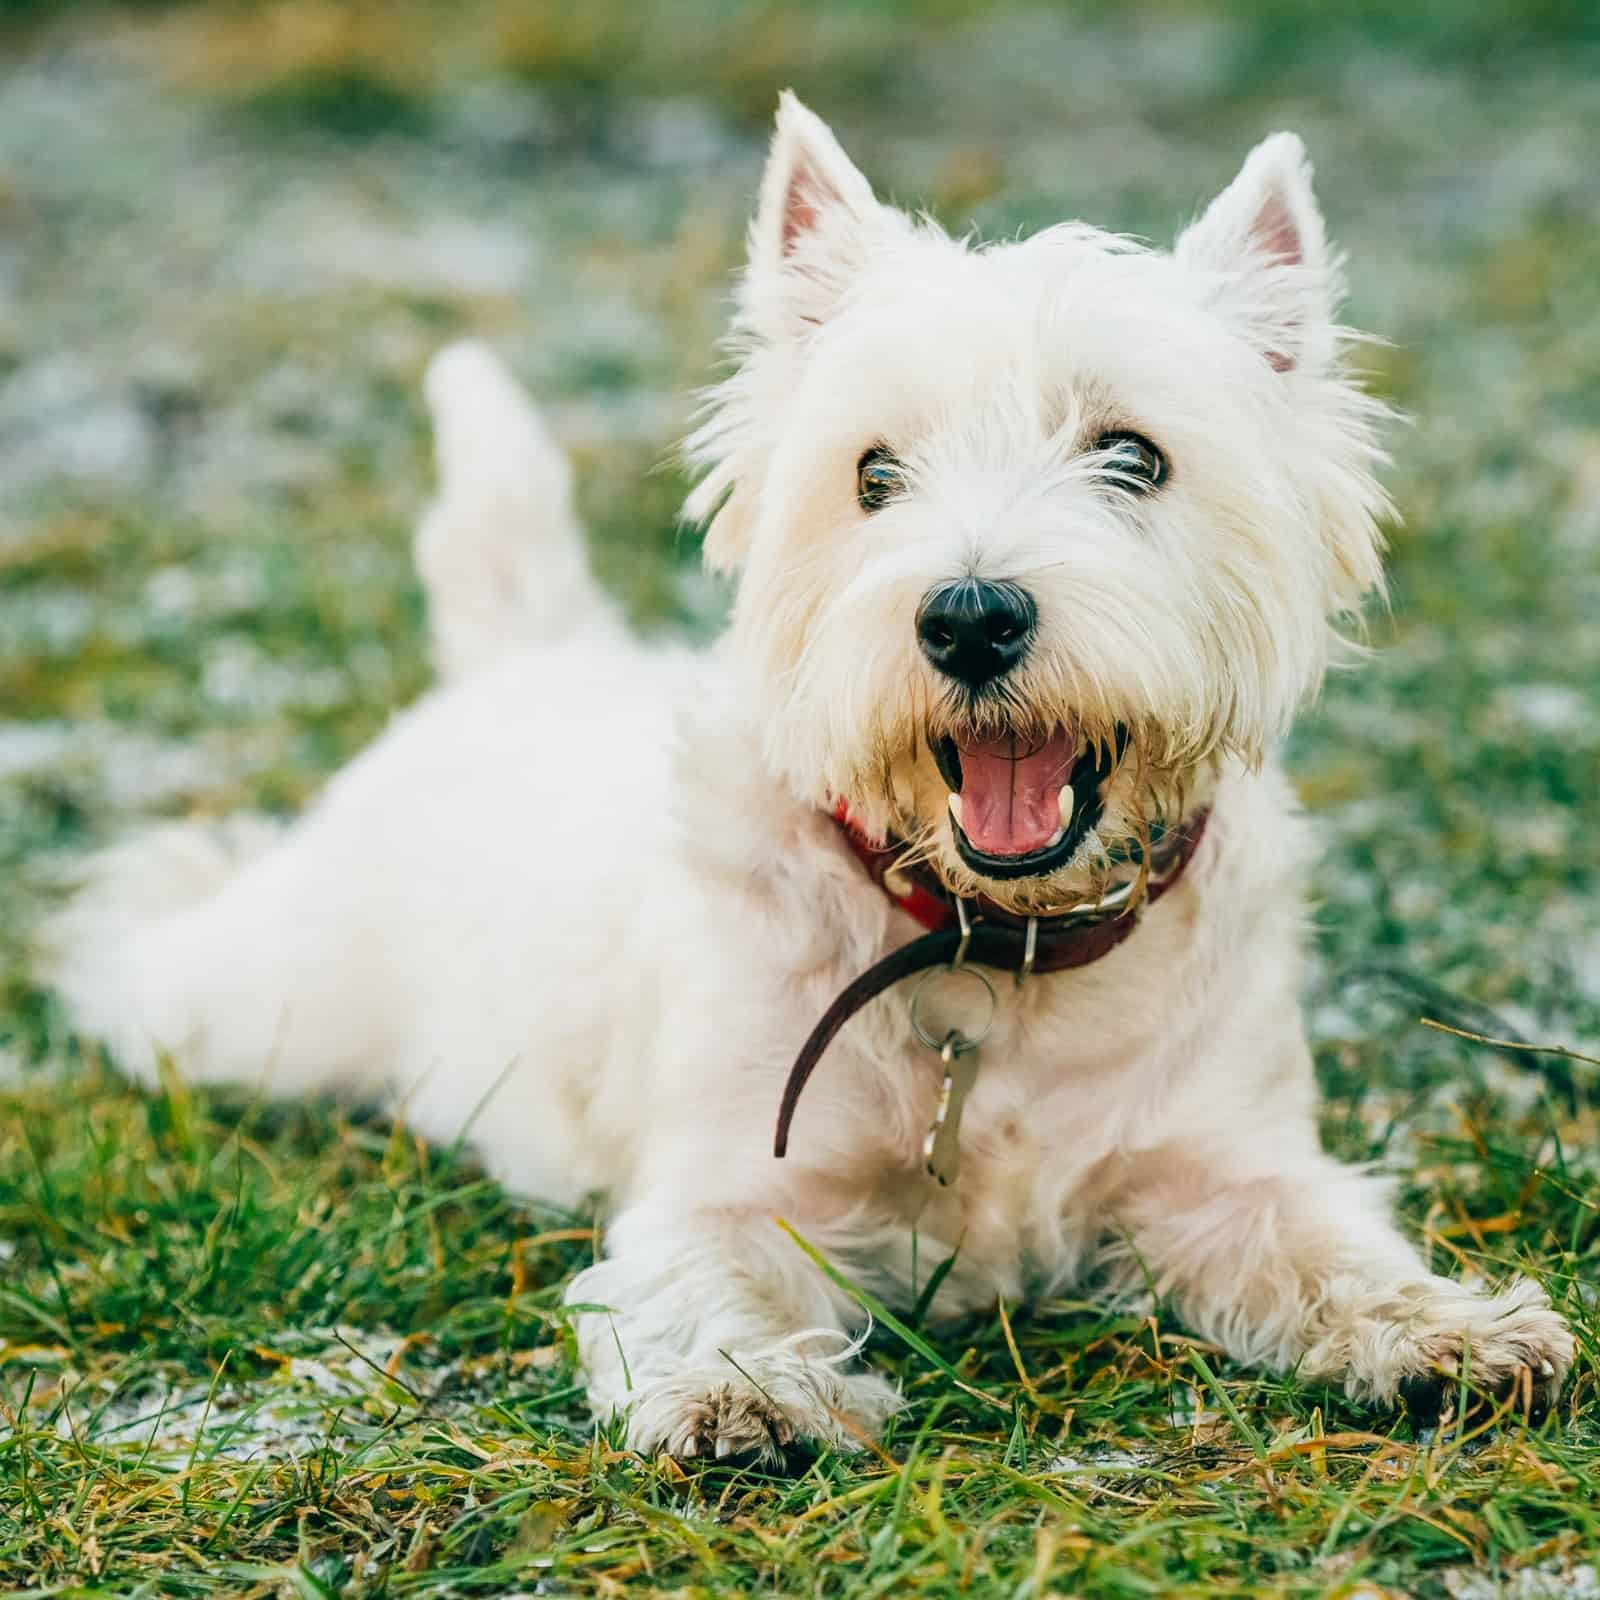 150 White Dog Names - Your one stop shop to find your pup's name